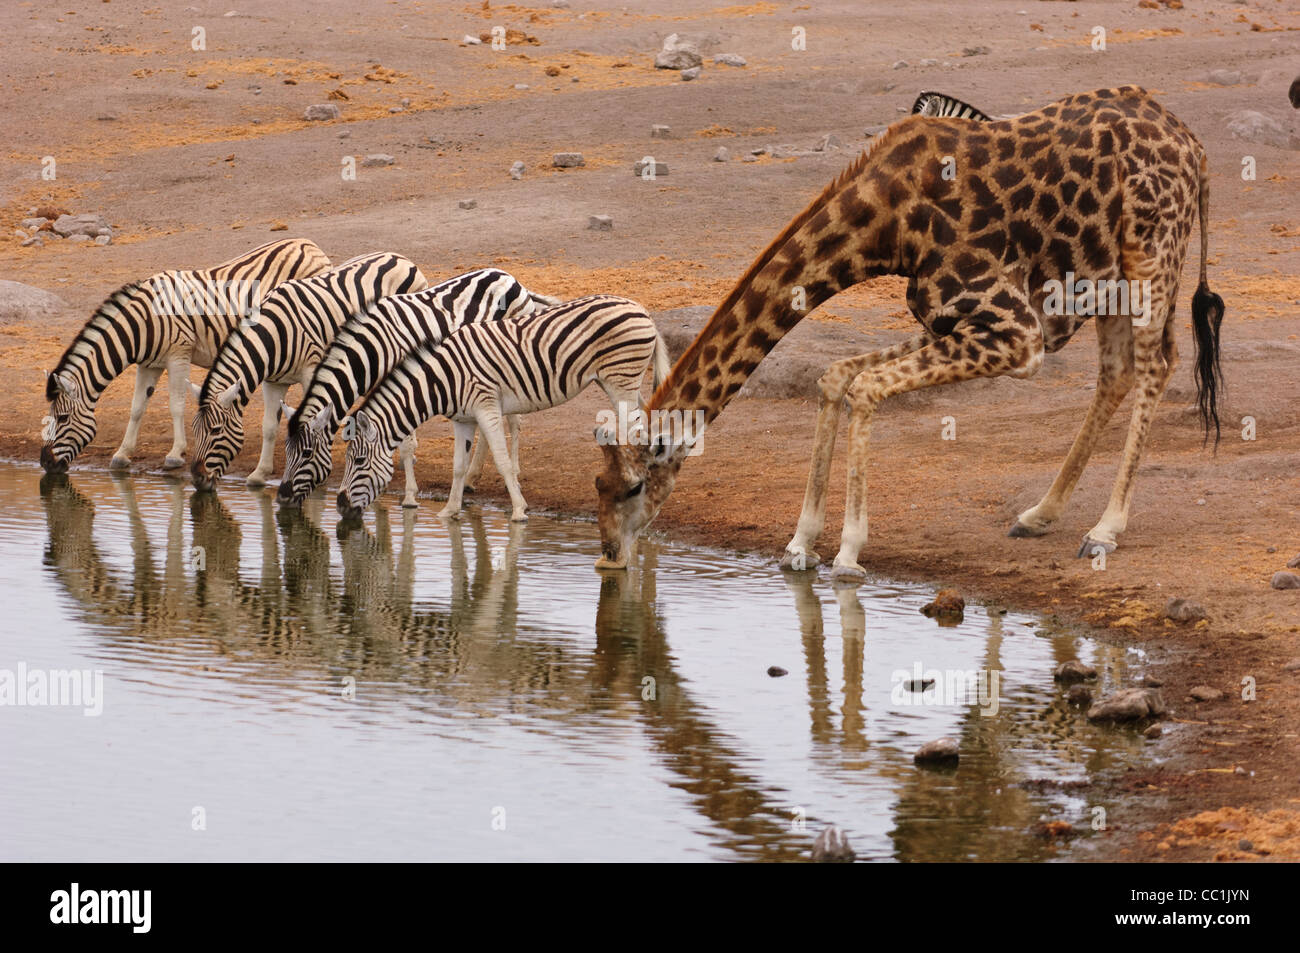 Les zèbres et girafes potable à un trou d'eau. Parc National d'Etosha, Namibie. Photo Stock